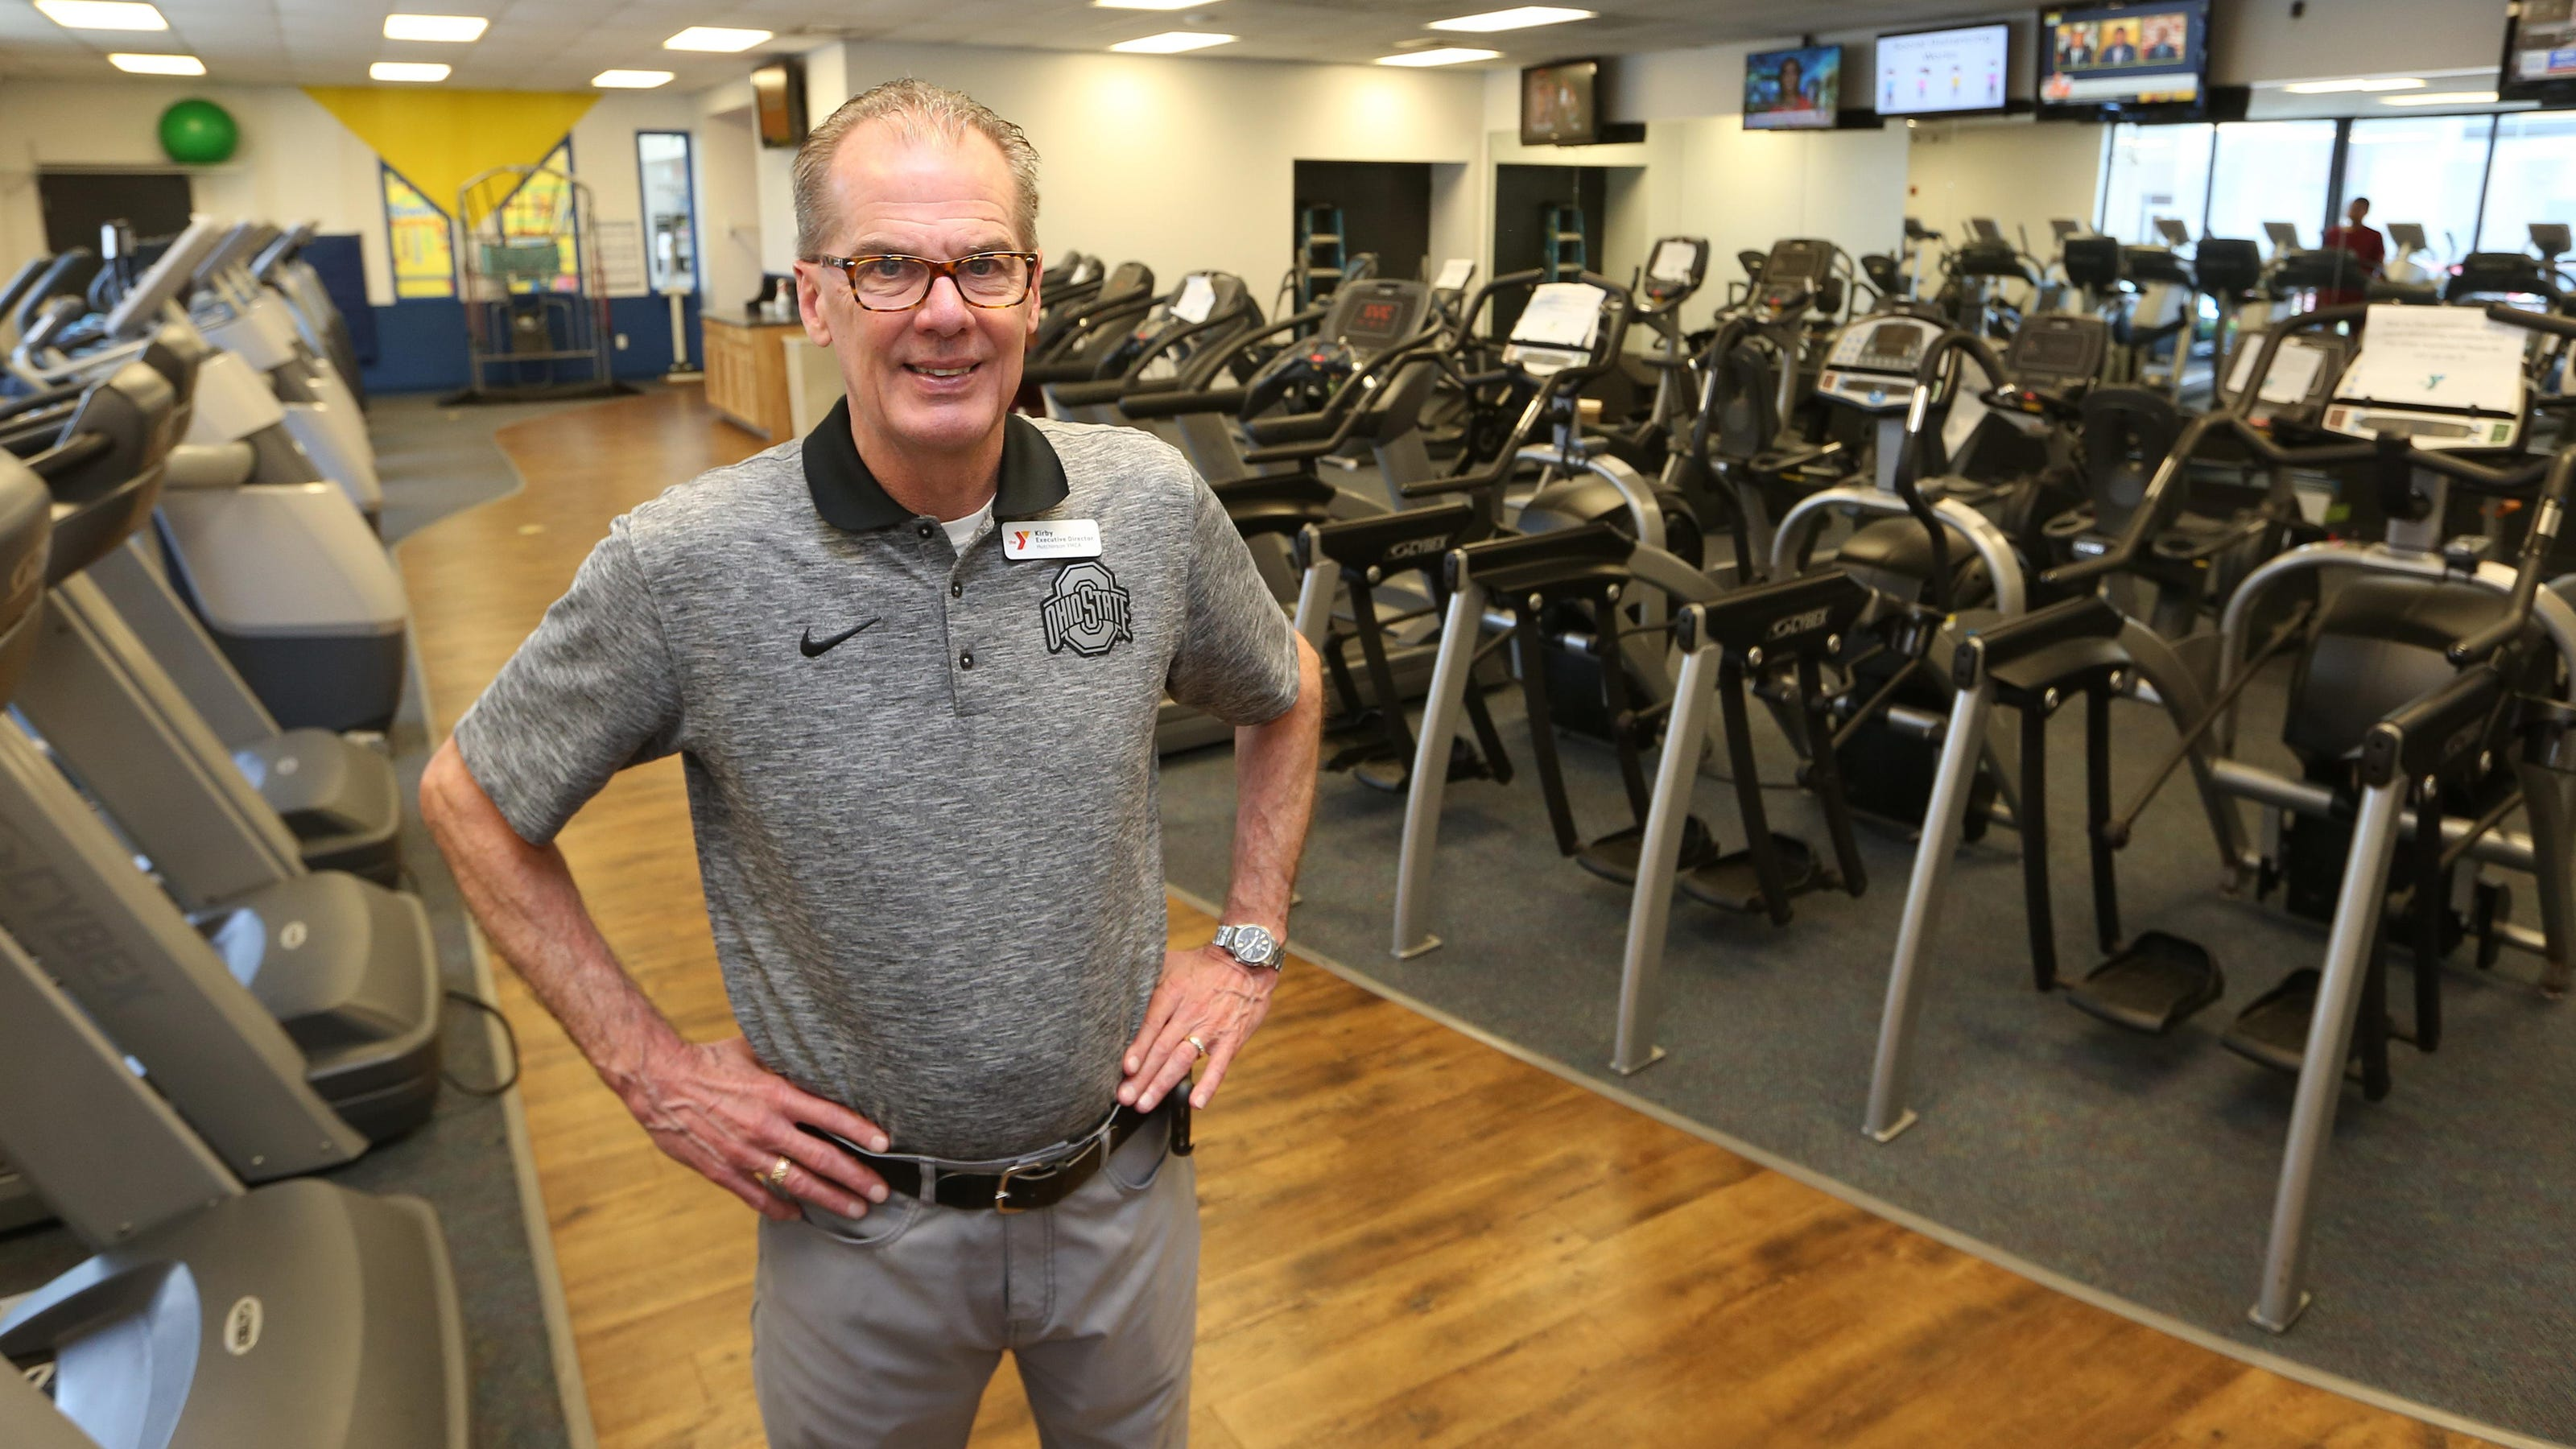 Ymca Director Leaving Early